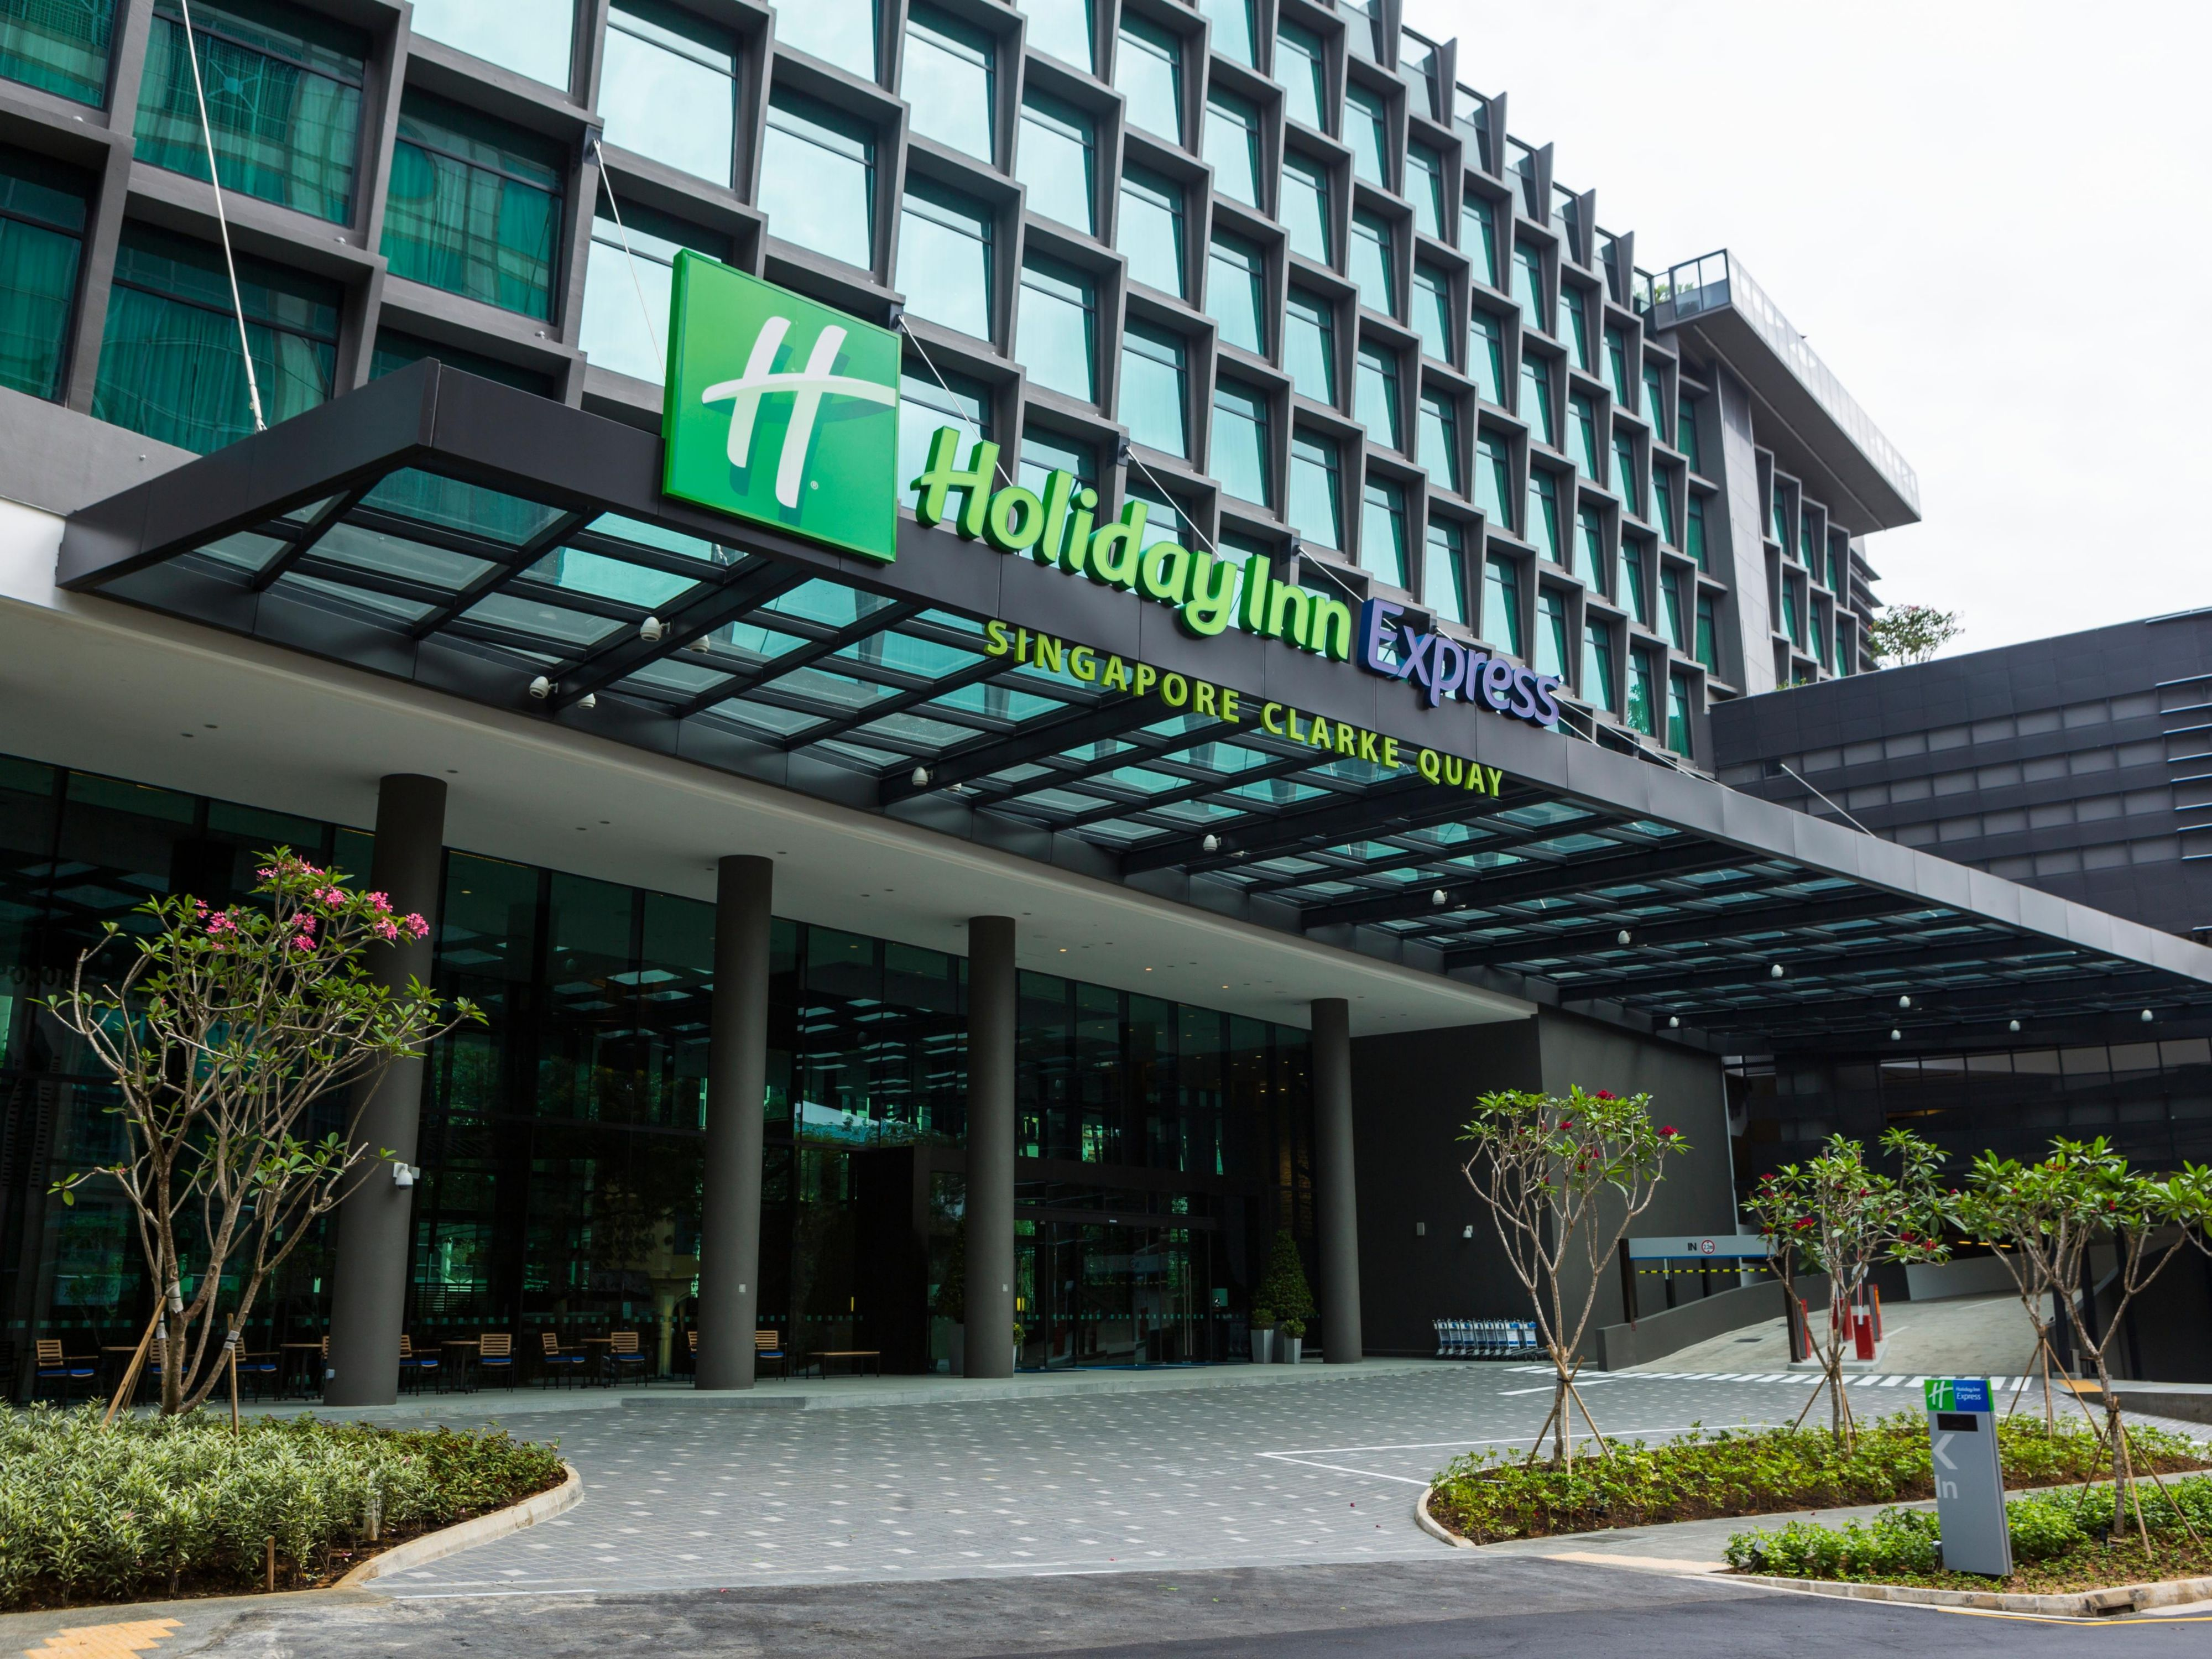 Entrance of Holiday Inn Express Singapore Clarke Quay Hotel